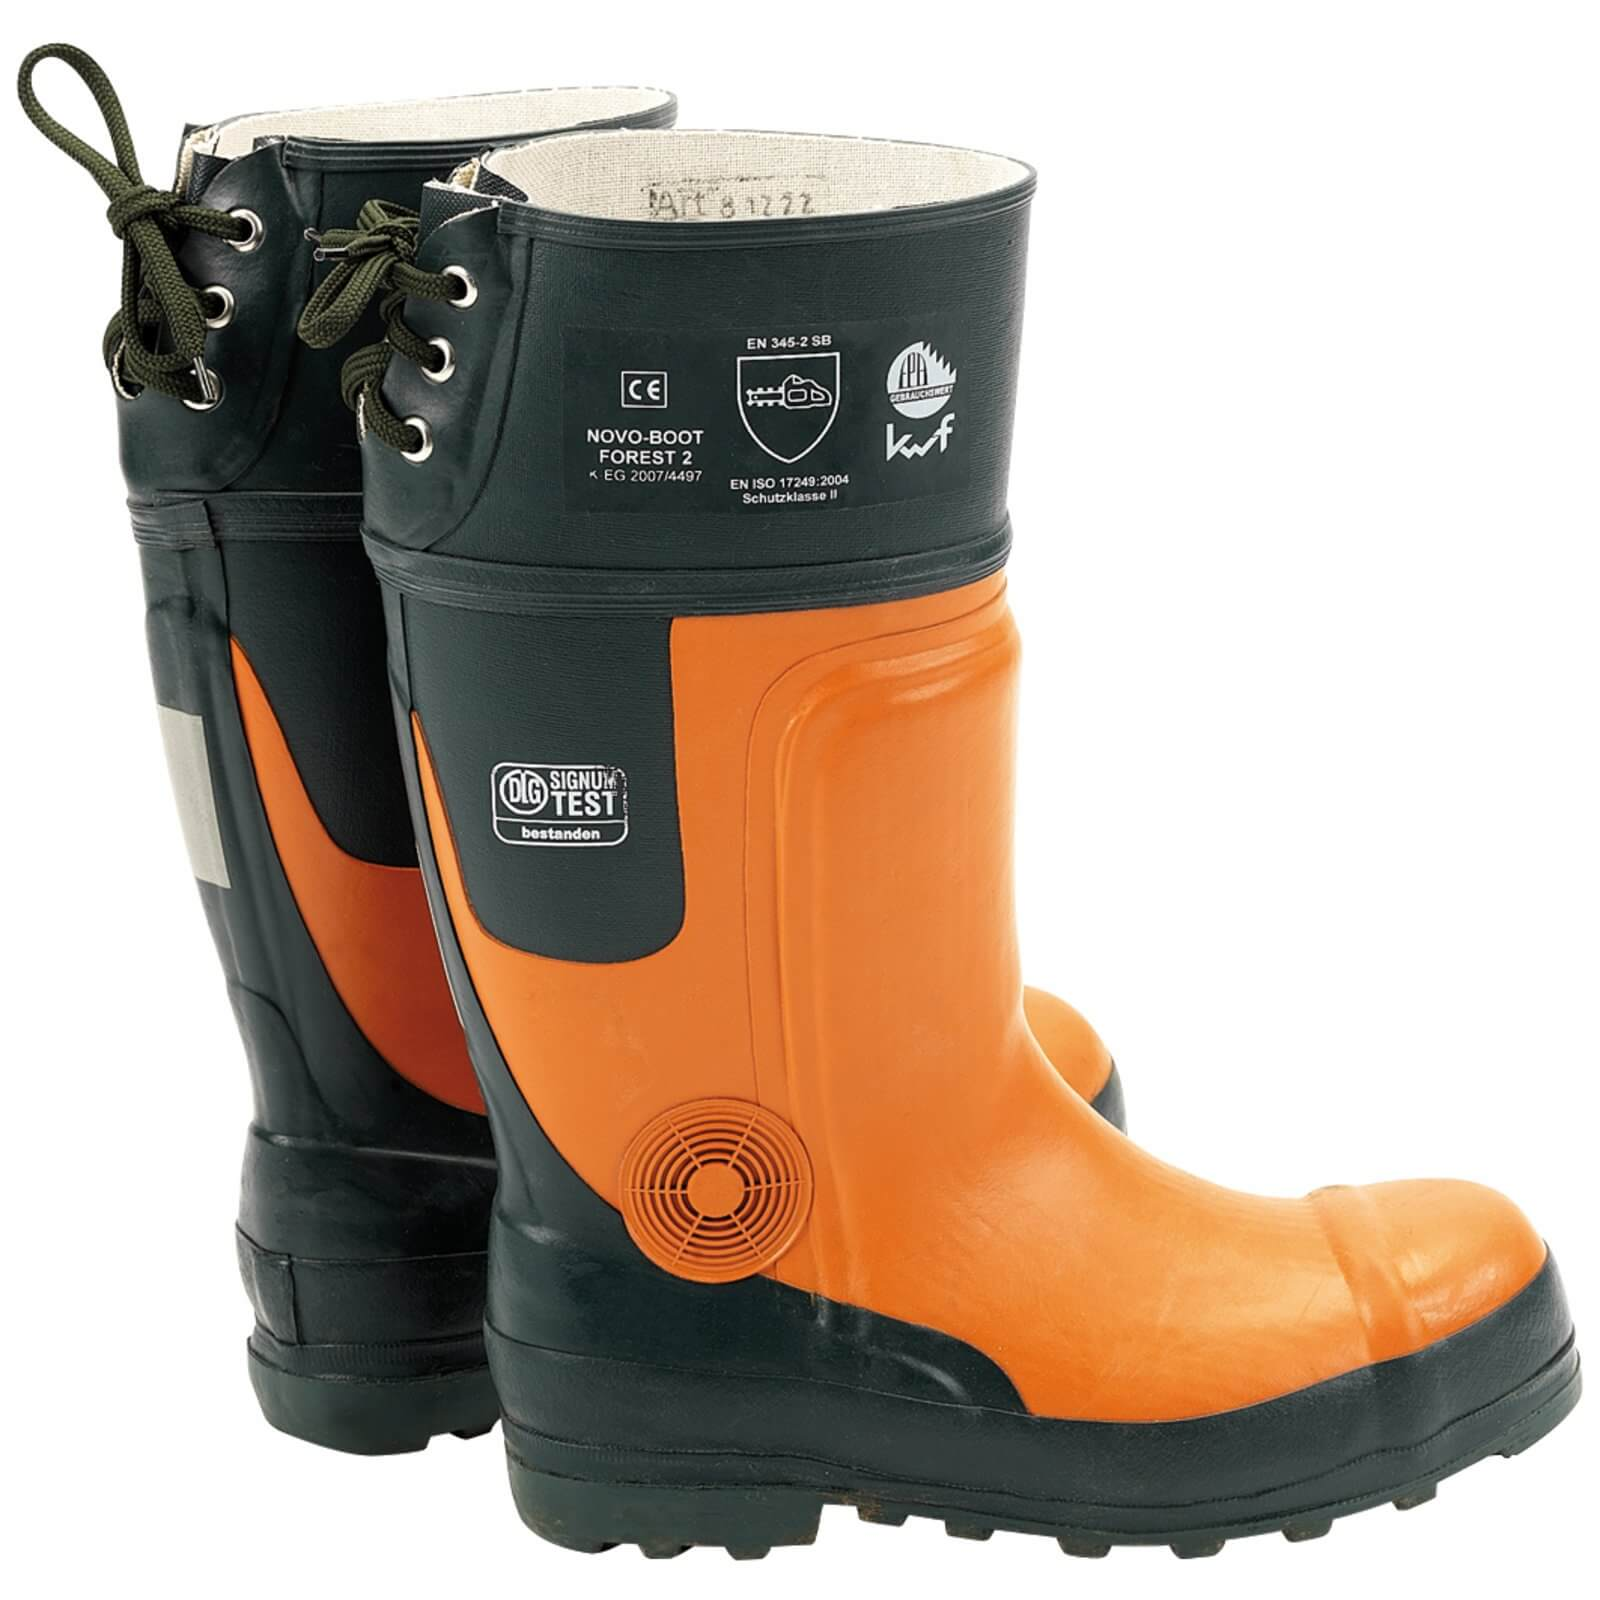 Draper Expert Mens Chainsaw Safety Boots Black / Orange Size 9